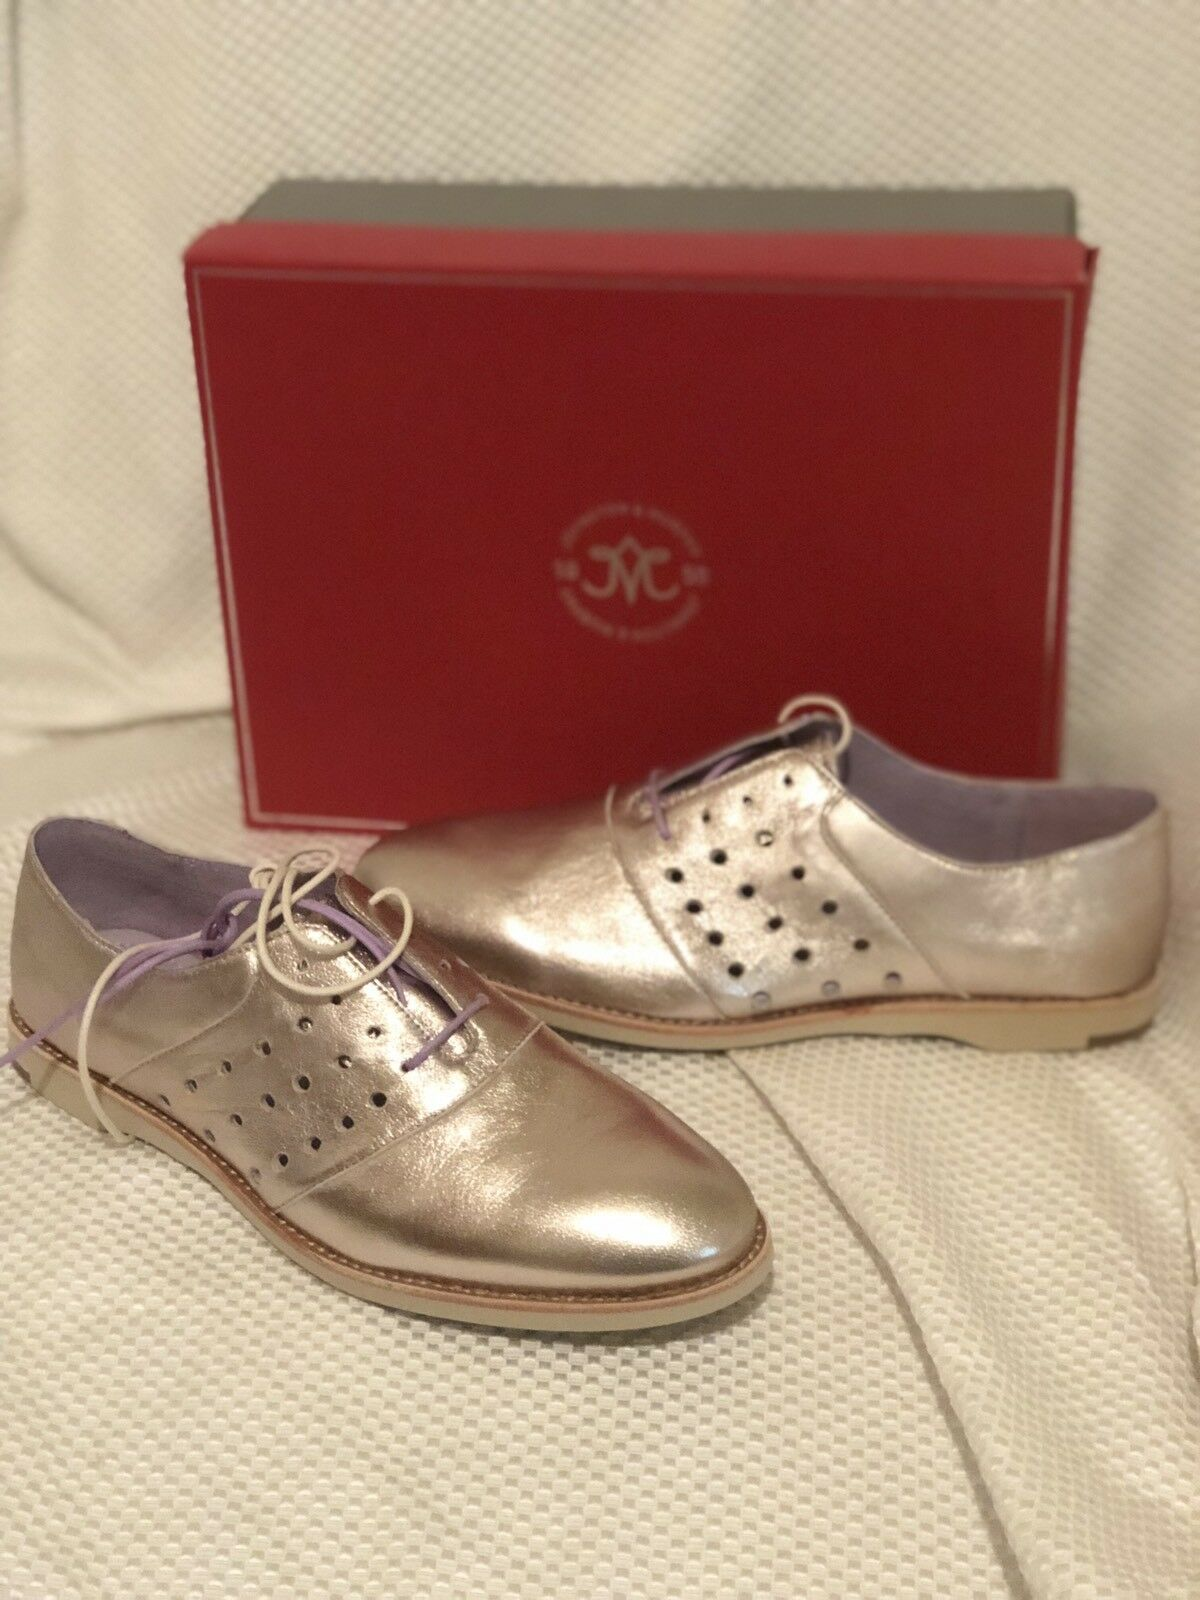 NIB  158 Johnston & Murphy- Champagne Perforated Leather Oxford schuhe- Sz 9.5 M